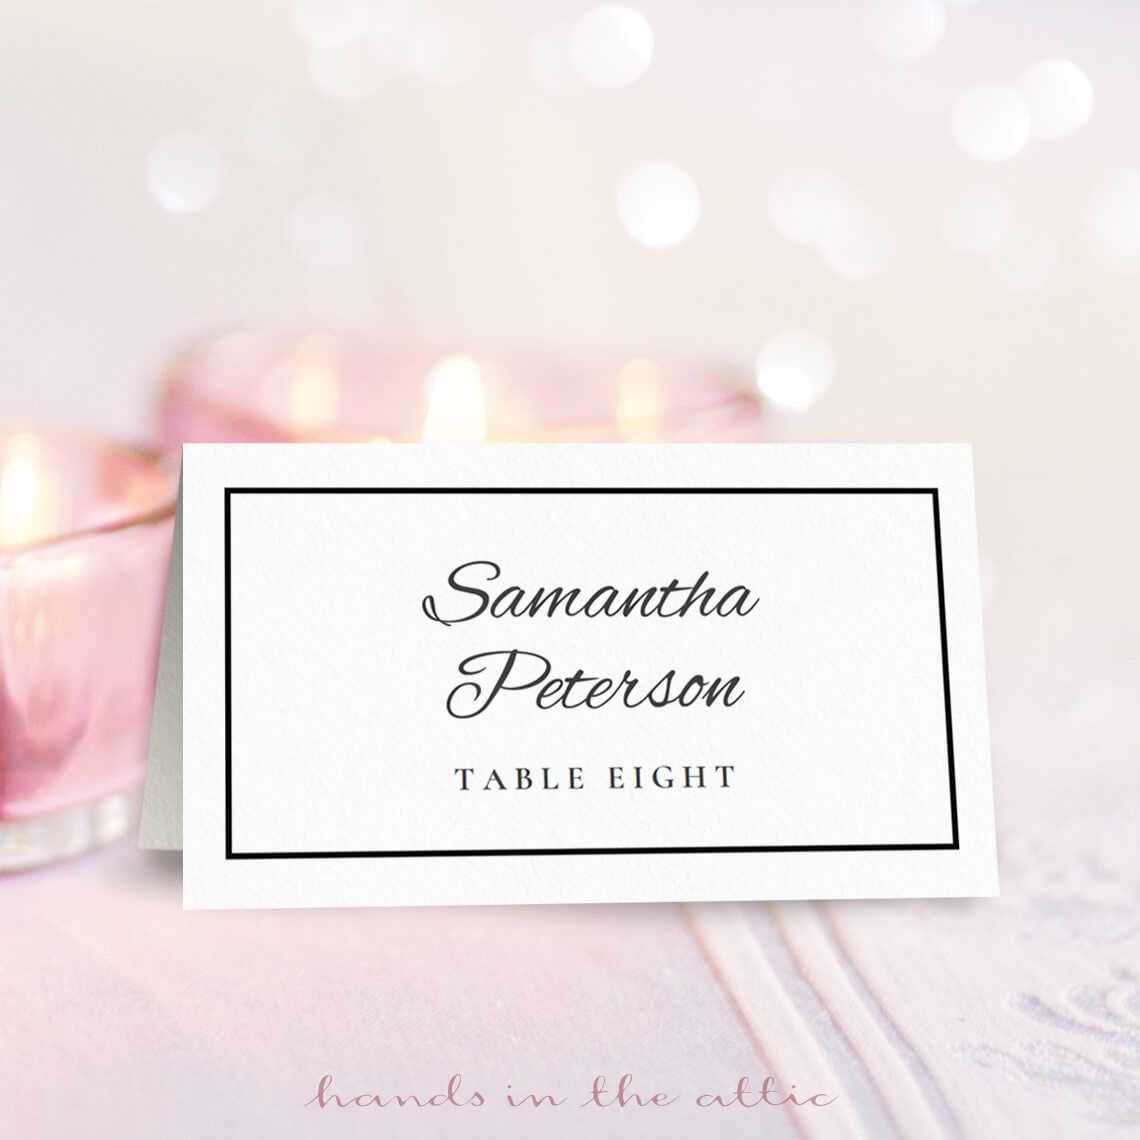 013 Free Place Card Template Templates Word Excellent Ideas In Free Template For Place Cards 6 Per Sheet